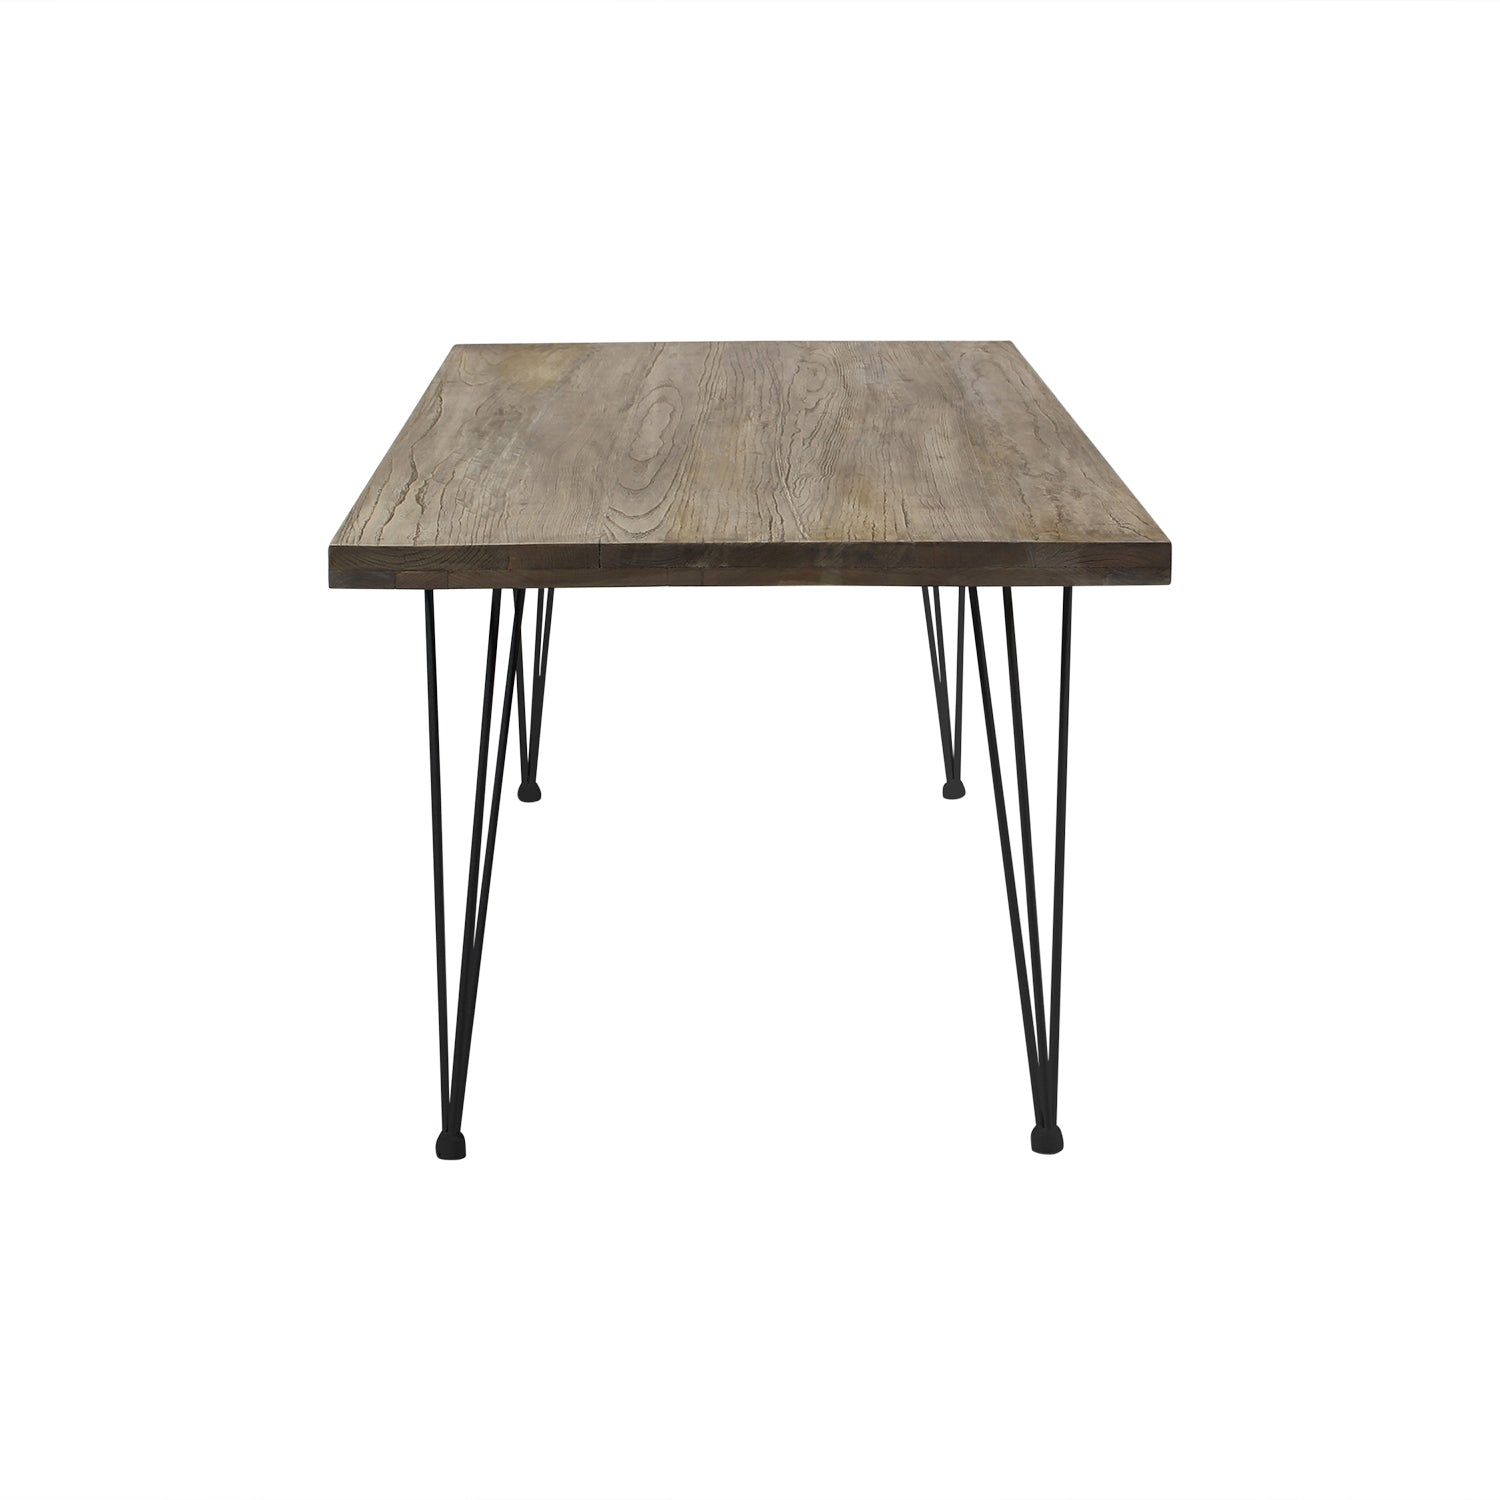 Bo Large Elmwood Dining Table With Hairpin Legs Wudern